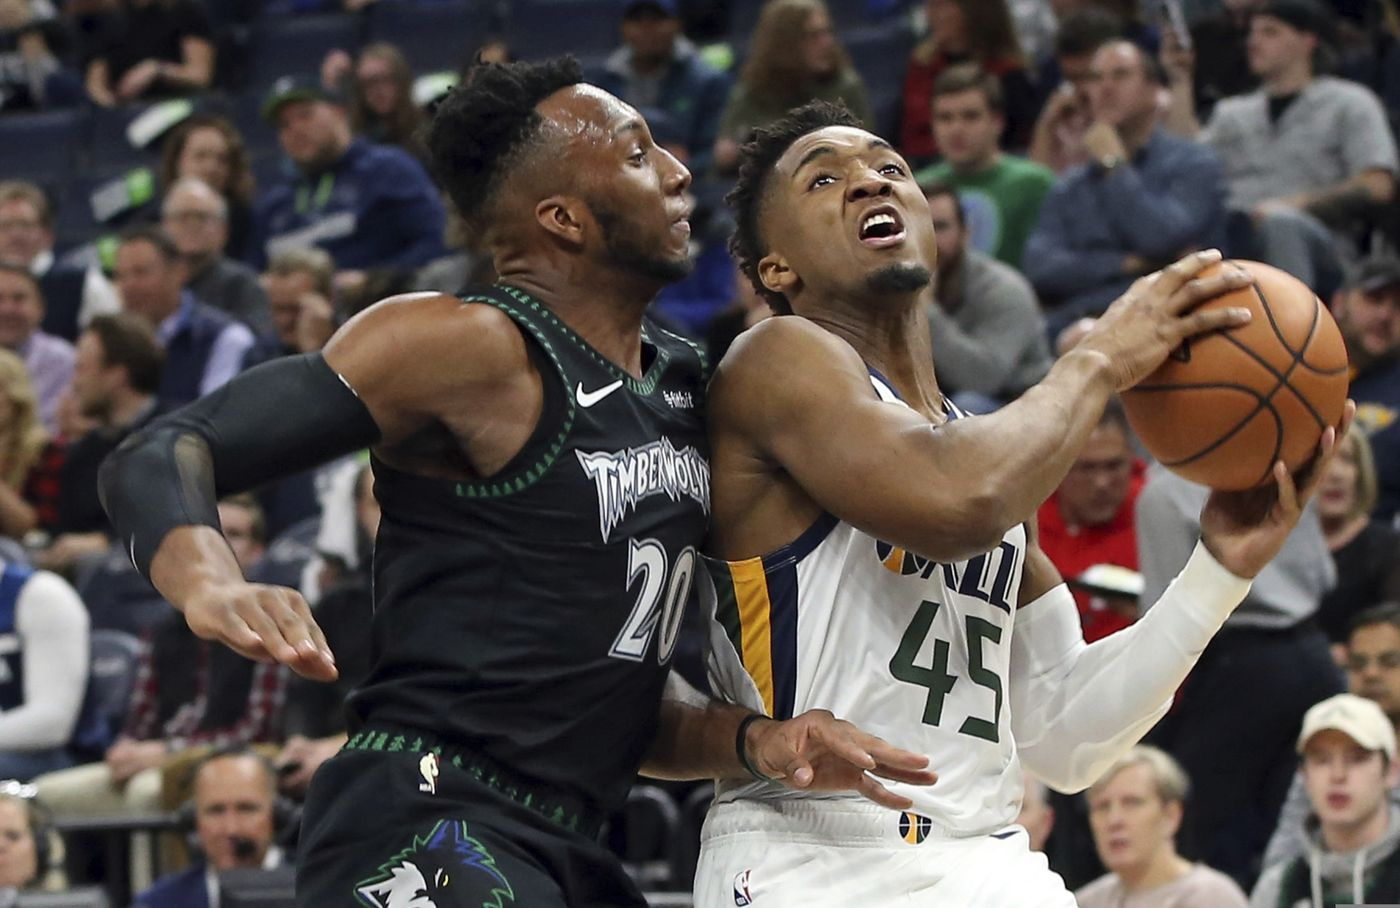 3a3a8232 Utah Jazz's Donovan Mitchell, right, eyes the basket while Minnesota  Timberwolves' Josh Okogie